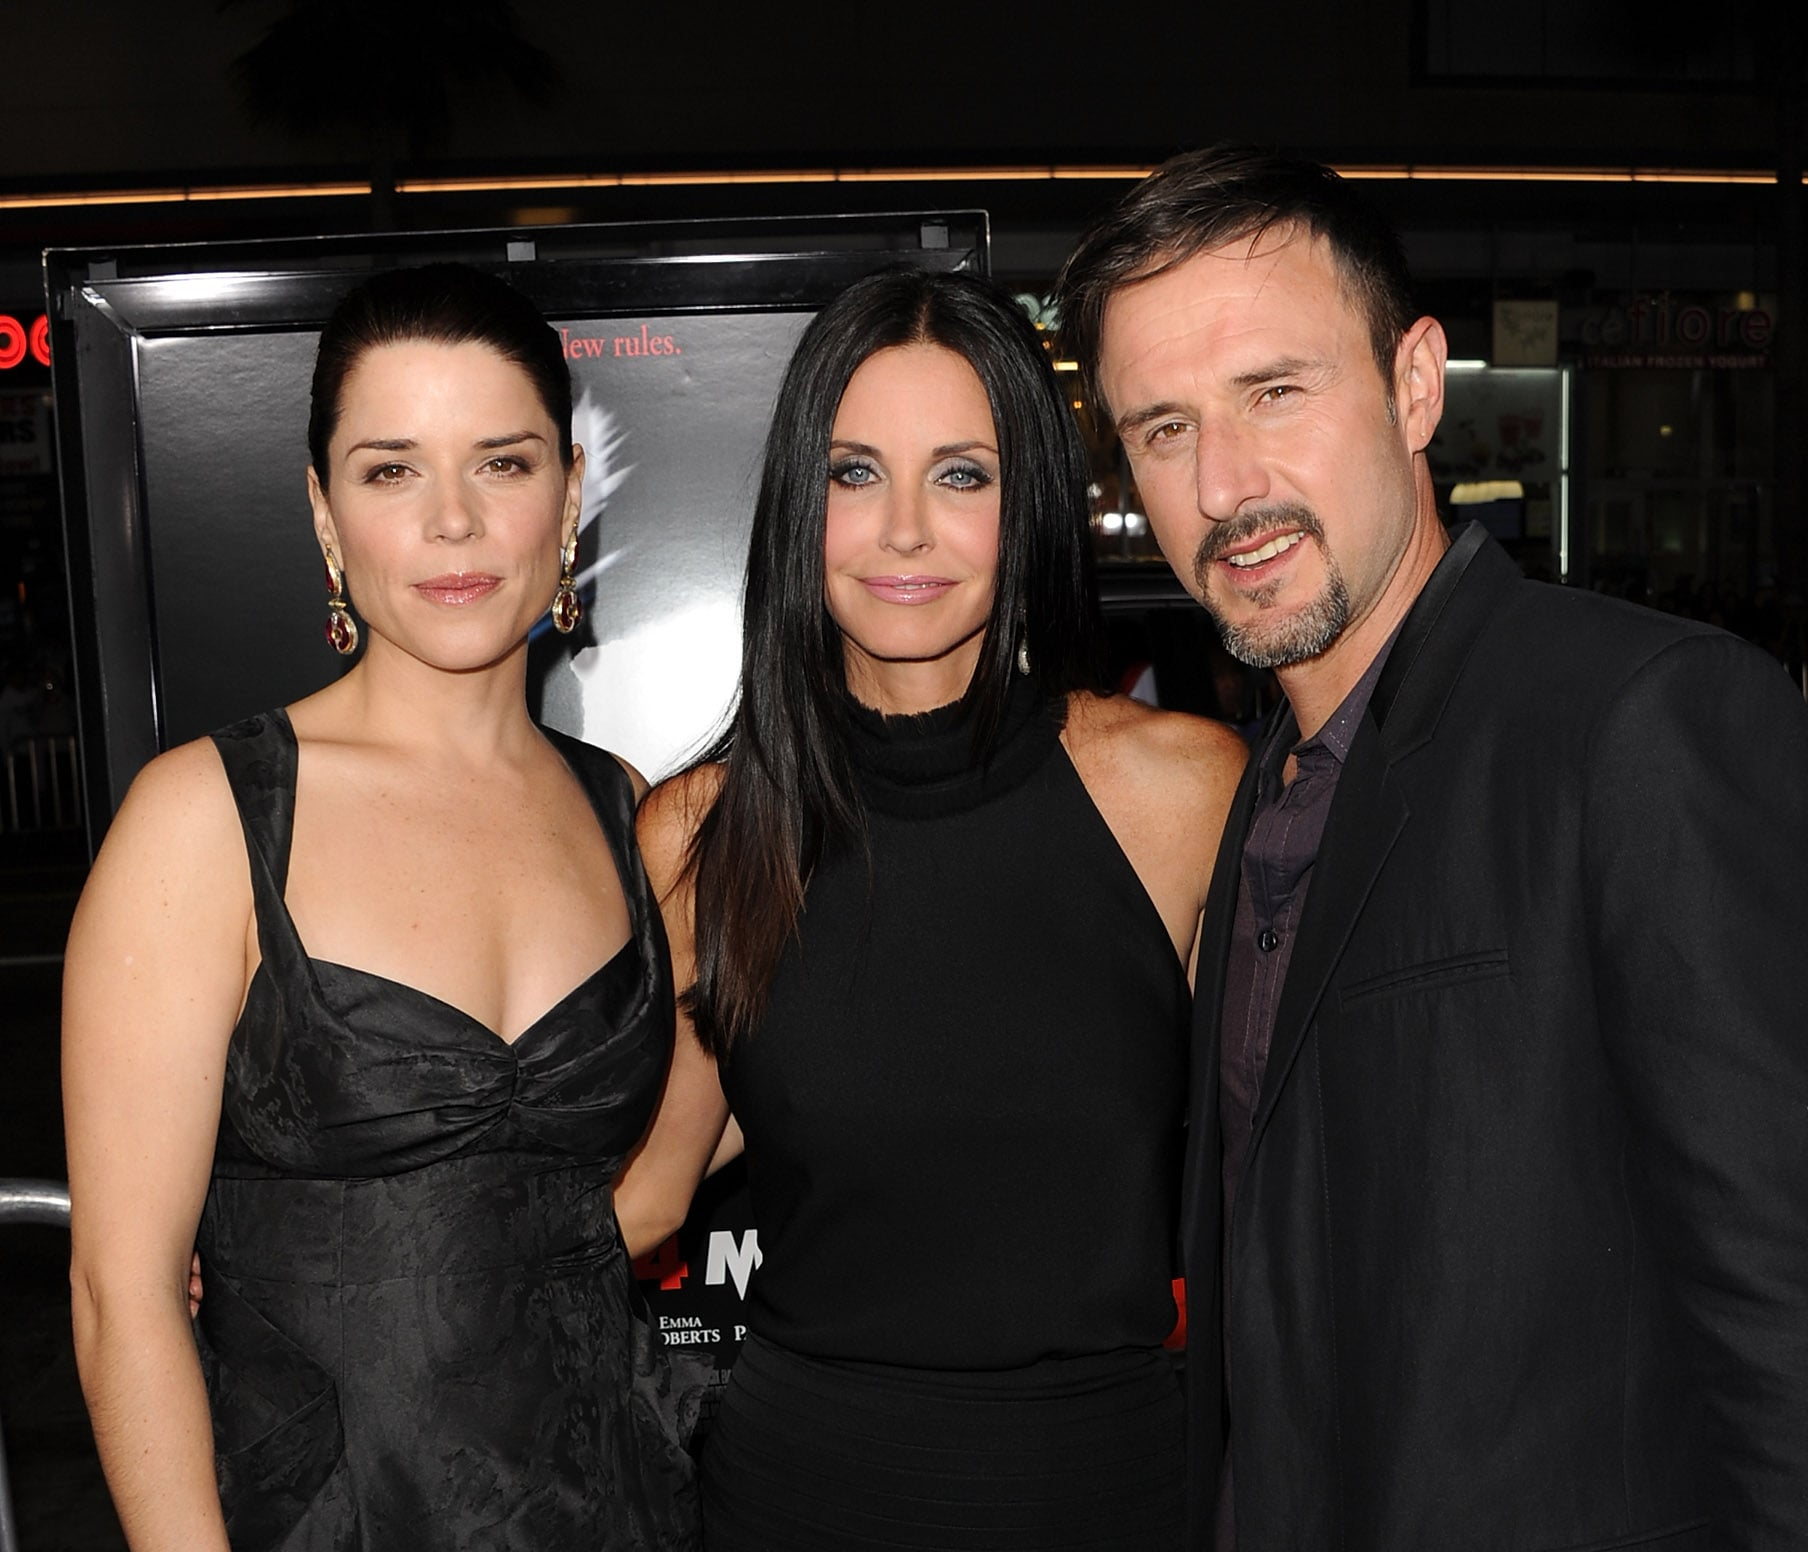 Neve Campbell, Courteney Cox and David Arquette